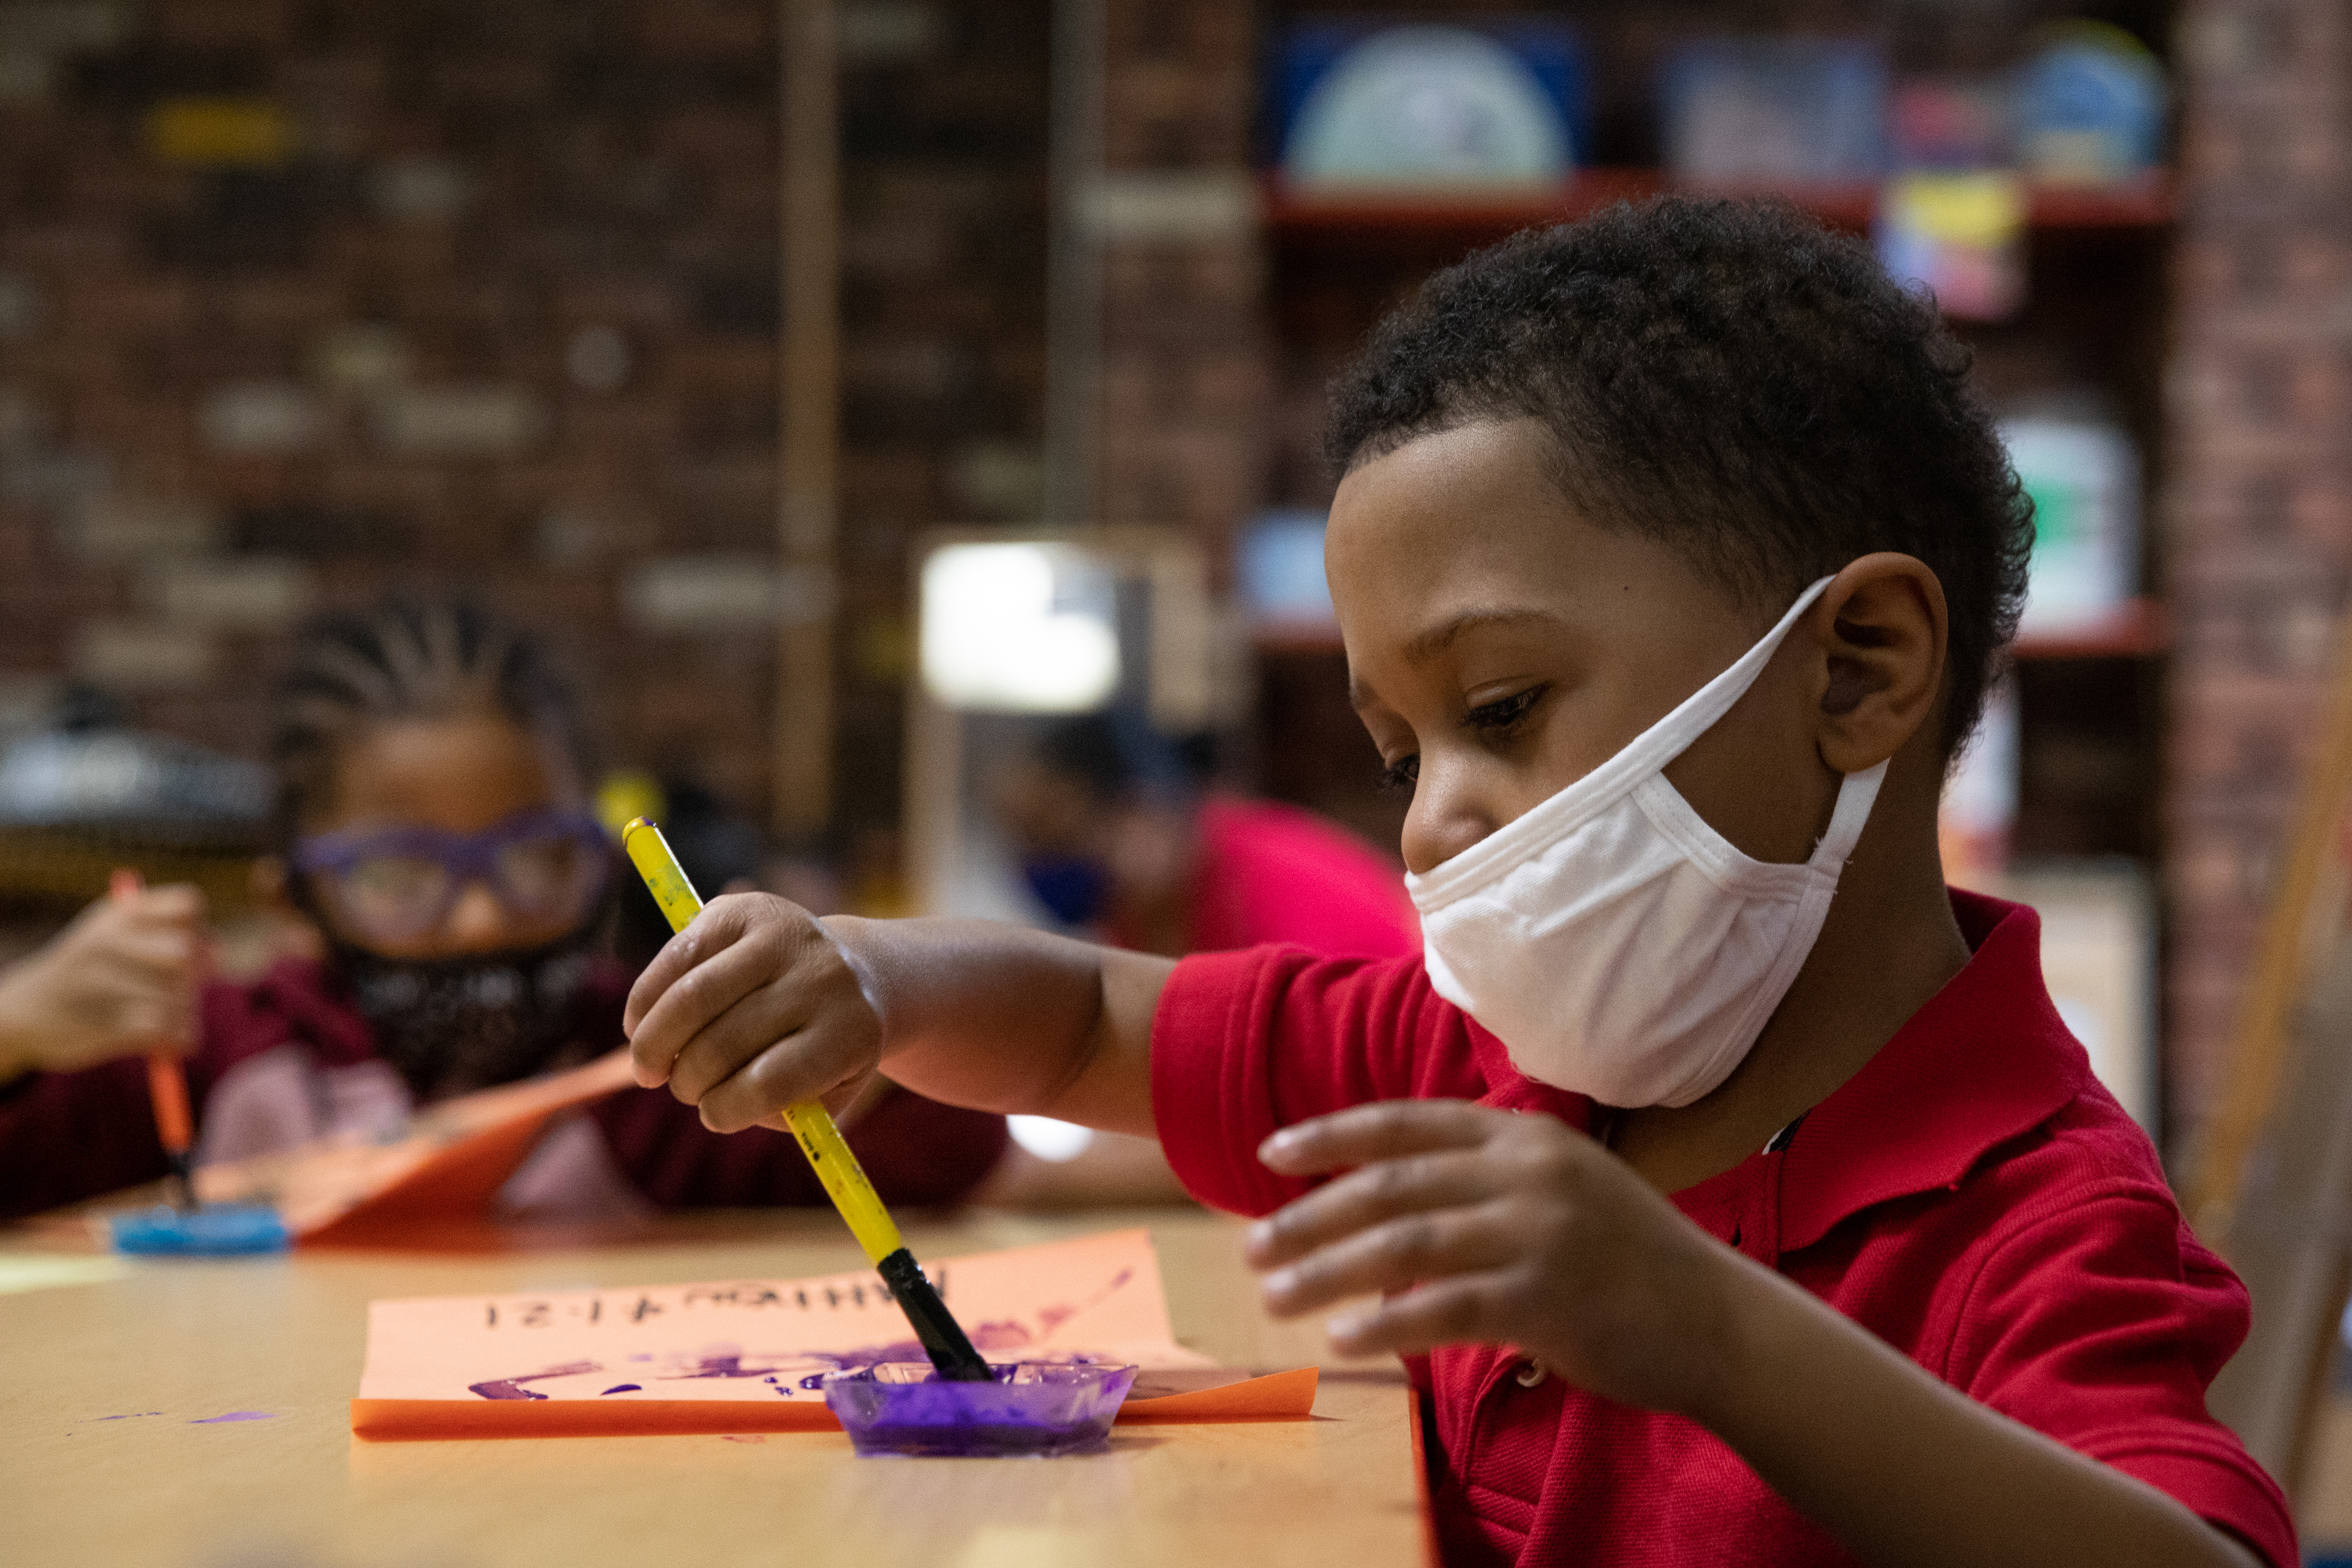 A young boy sitting in front of a piece of paper dips his brush in paint while at a preschool class.